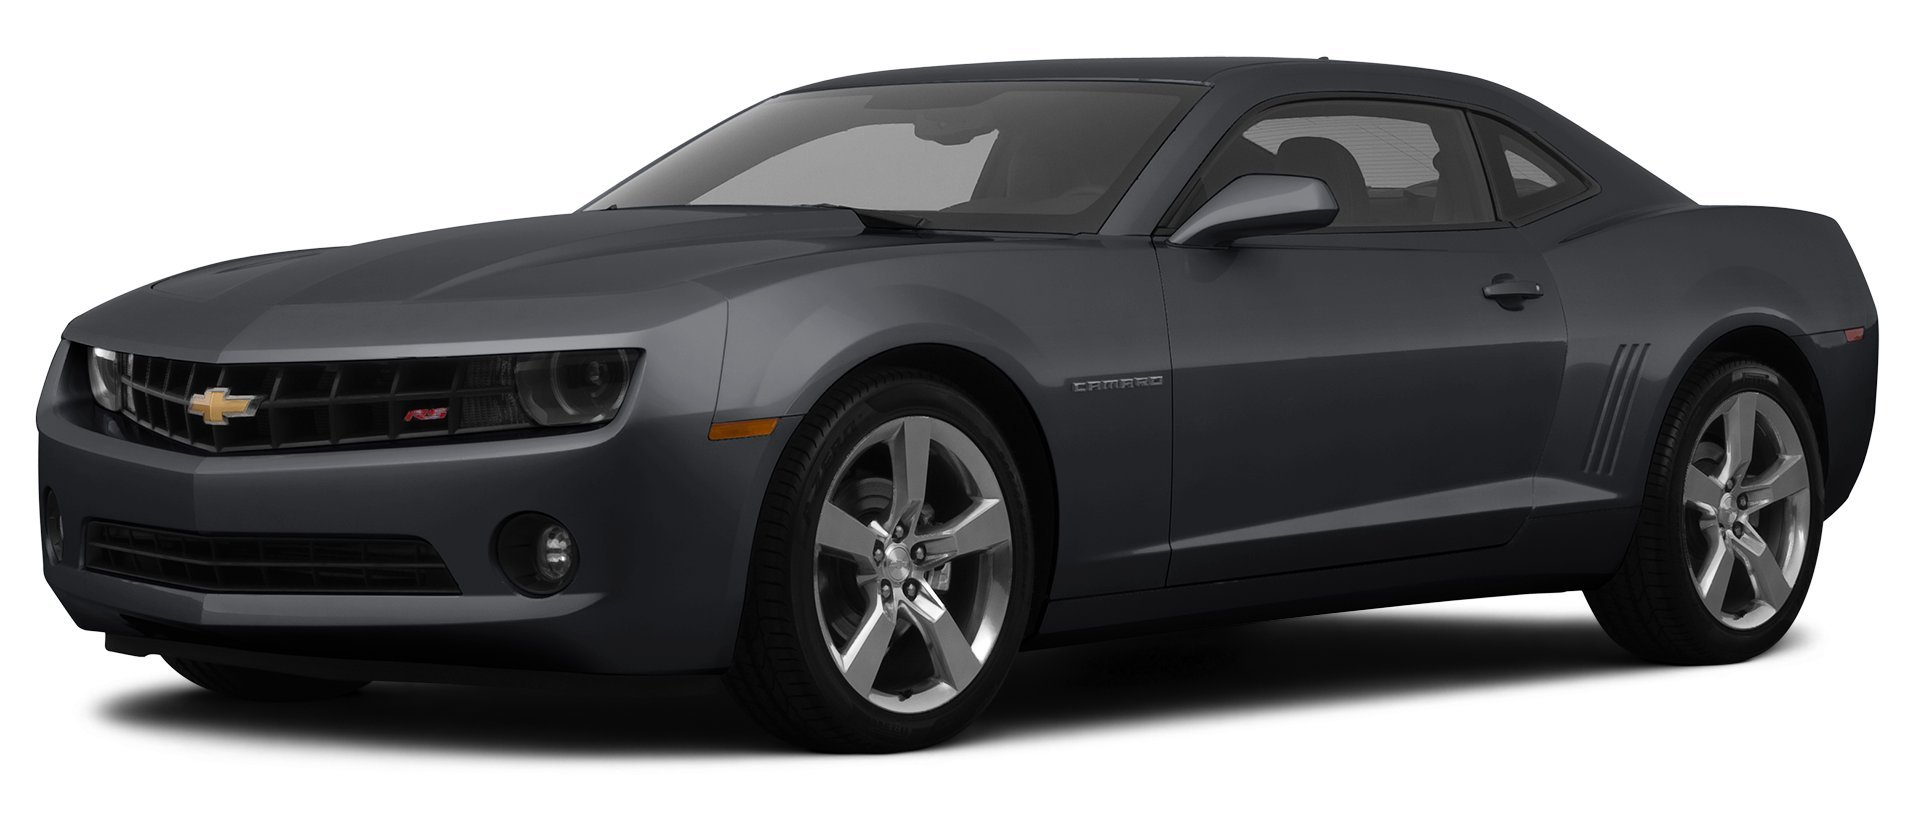 Amazon Com 2012 Chevrolet Camaro Reviews Images And